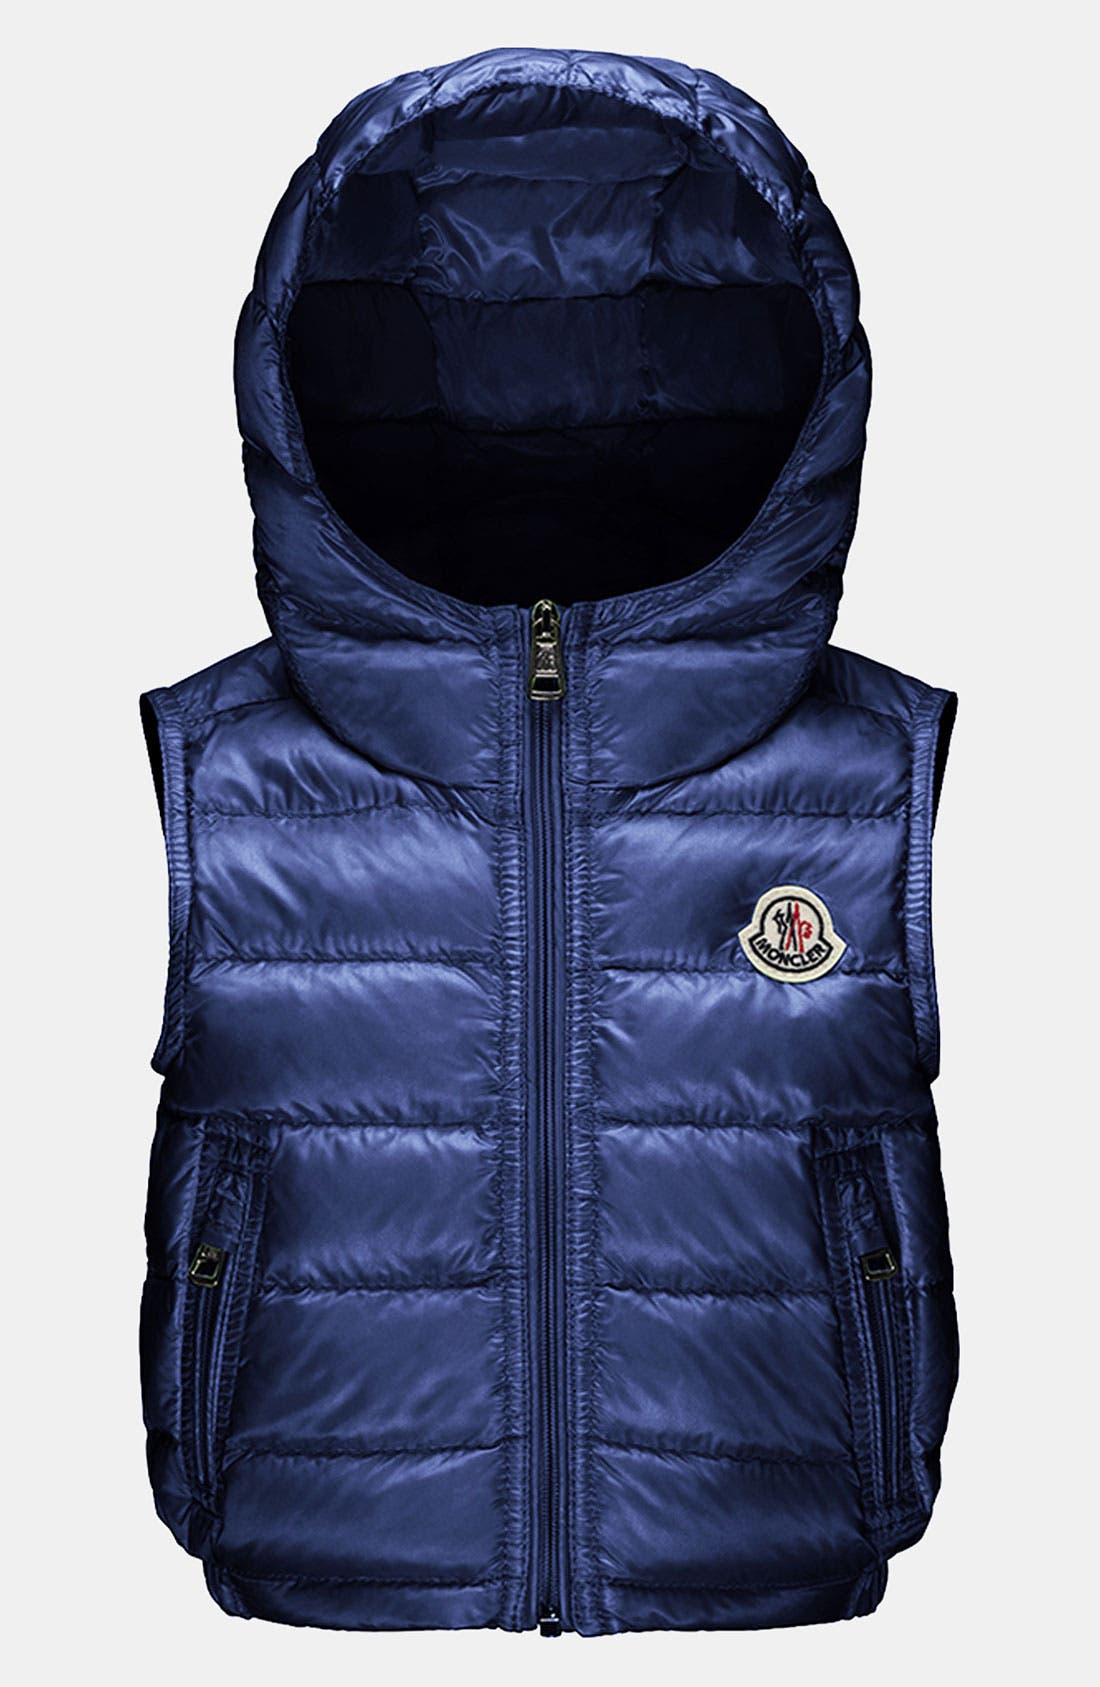 Main Image - Moncler 'Patrick' Hooded Vest (Baby)